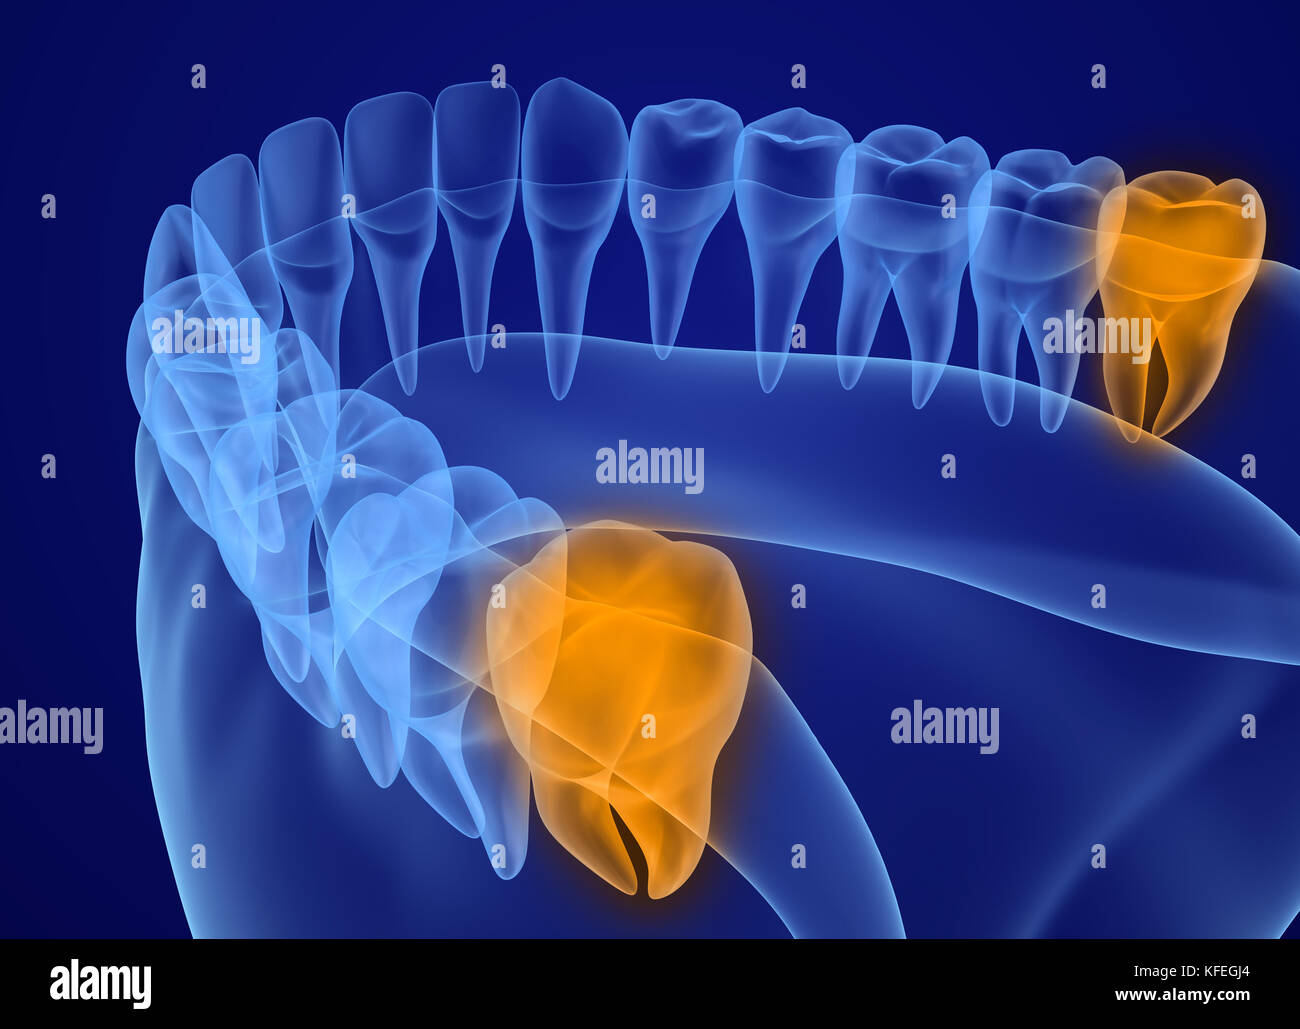 Wisdom tooth xray view. Medically accurate tooth 3D illustration - Stock Image